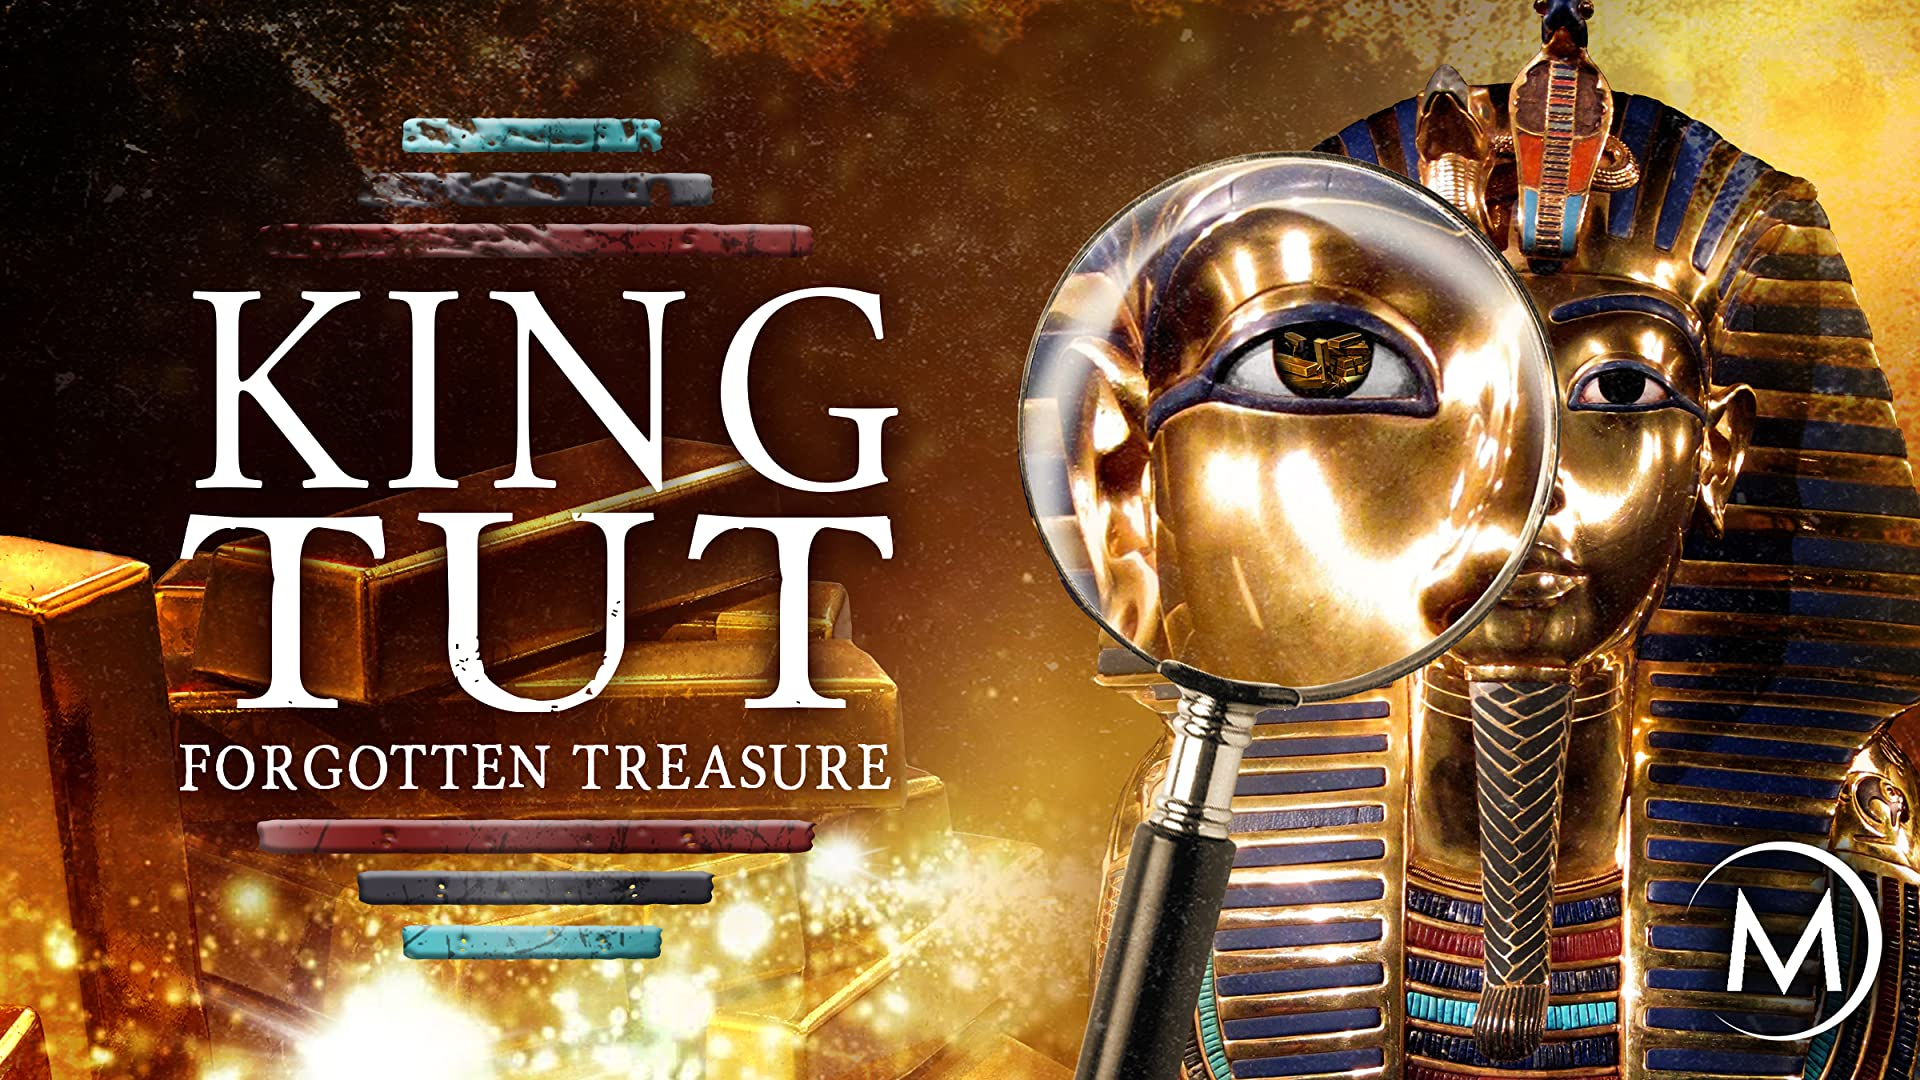 Watch Nefertiti and Co - Homecoming from Exile | Prime Video